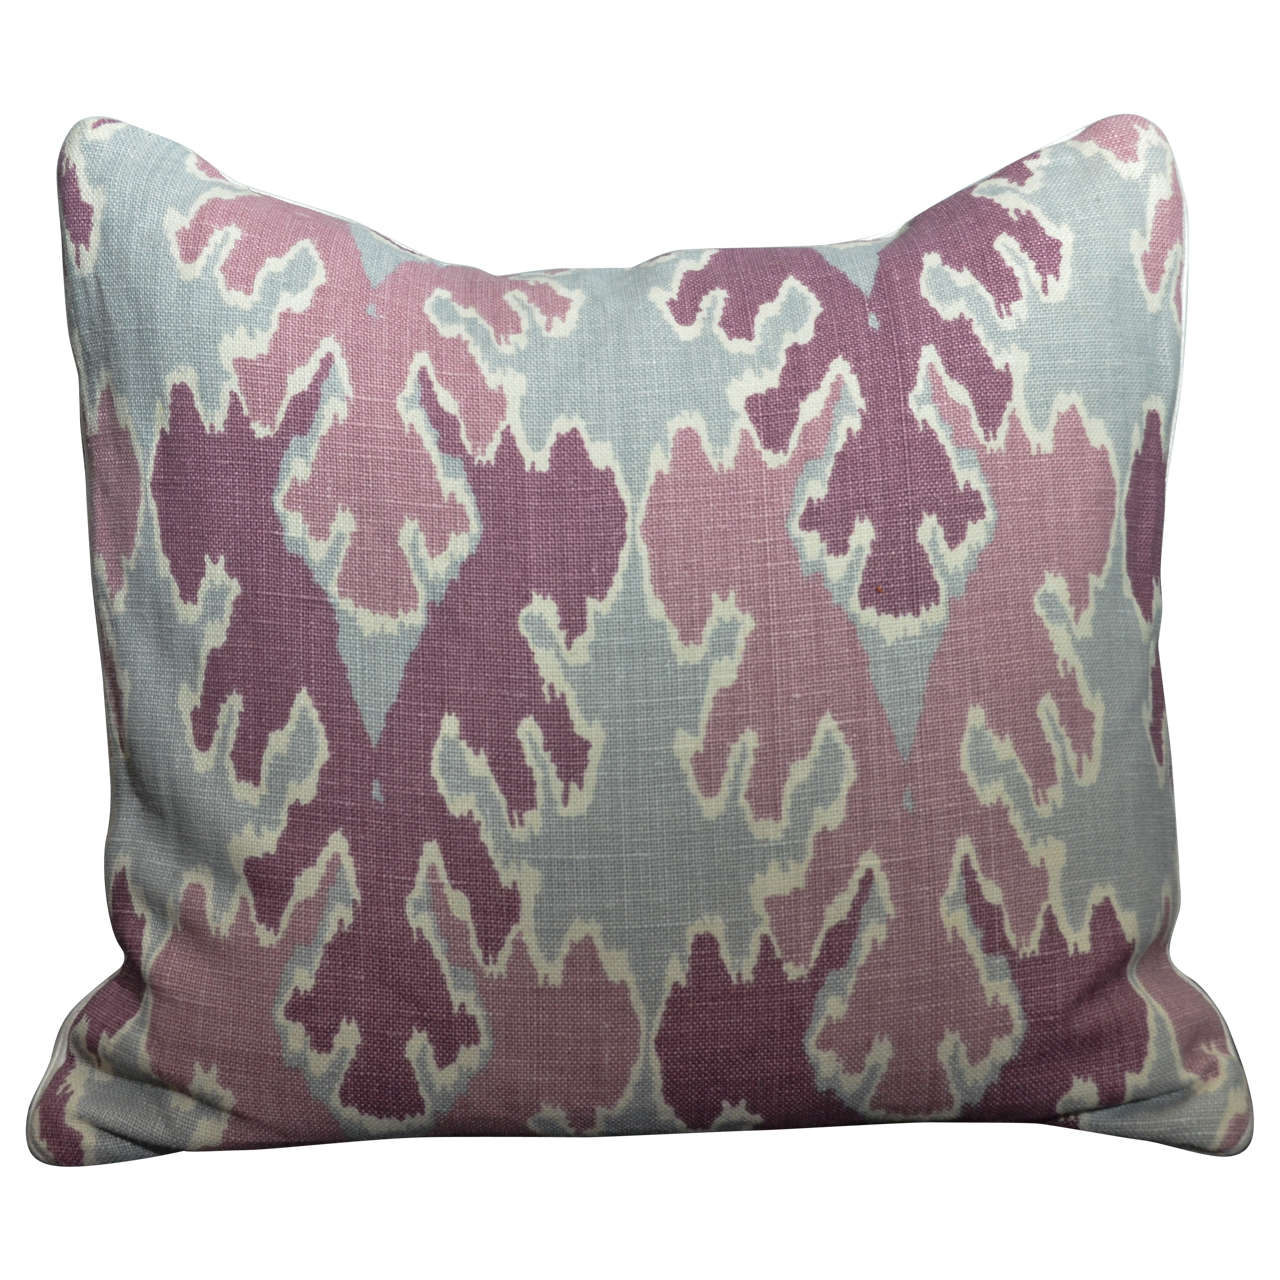 jewel tone listing dark pillows il fullxfull raspberry pillow pink magenta cover zoom designer